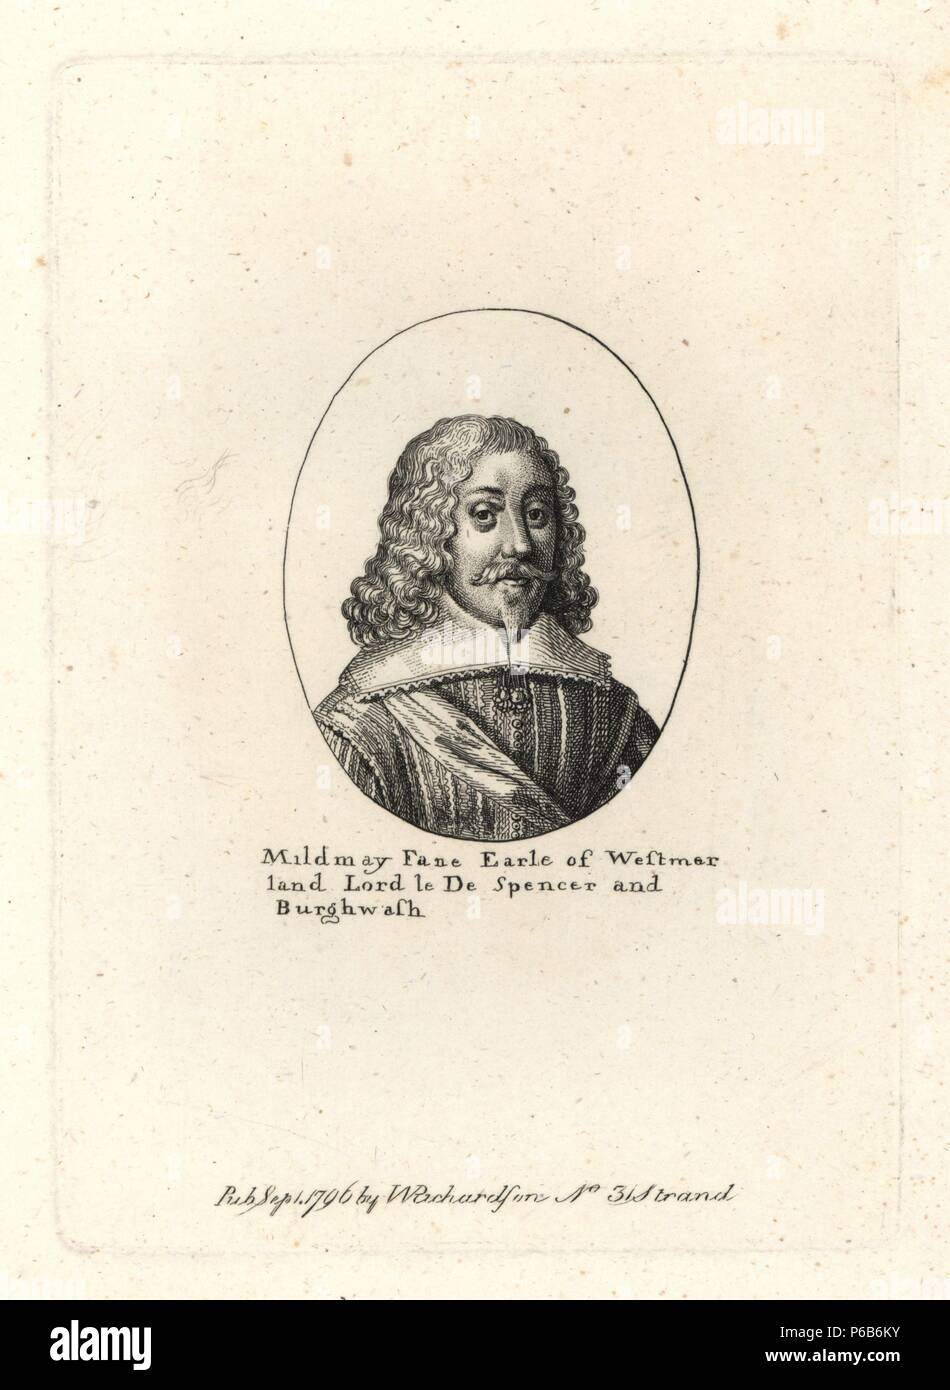 """Mildmay Fane, Earl of Westmoreland, died 1665. From a small oval by Wenceslas Hollar. Copperplate engraving from Richardson's """"Portraits illustrating Granger's Biographical History of England,"""" London, 1792–1812. Published by William Richardson, printseller, London. James Granger (1723–1776) was an English clergyman, biographer, and print collector. Stock Photo"""